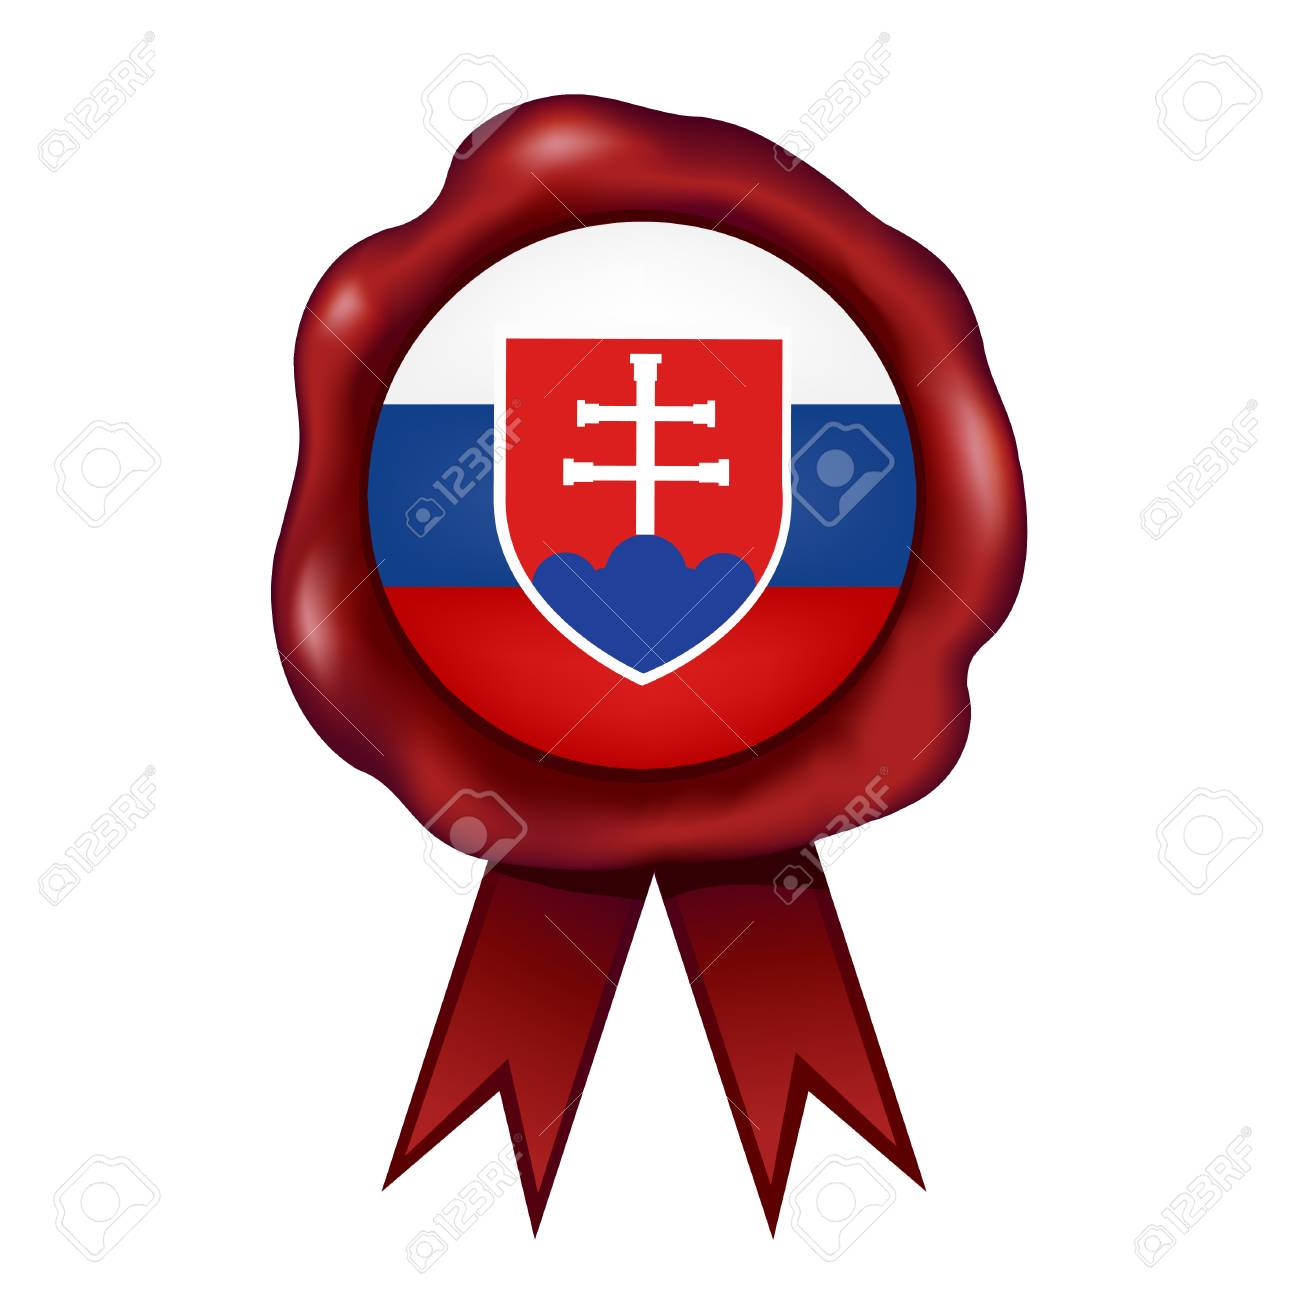 flag of slovakia wax seal vector illustration royalty free cliparts rh 123rf com seal victor #60954 seal victor 60265